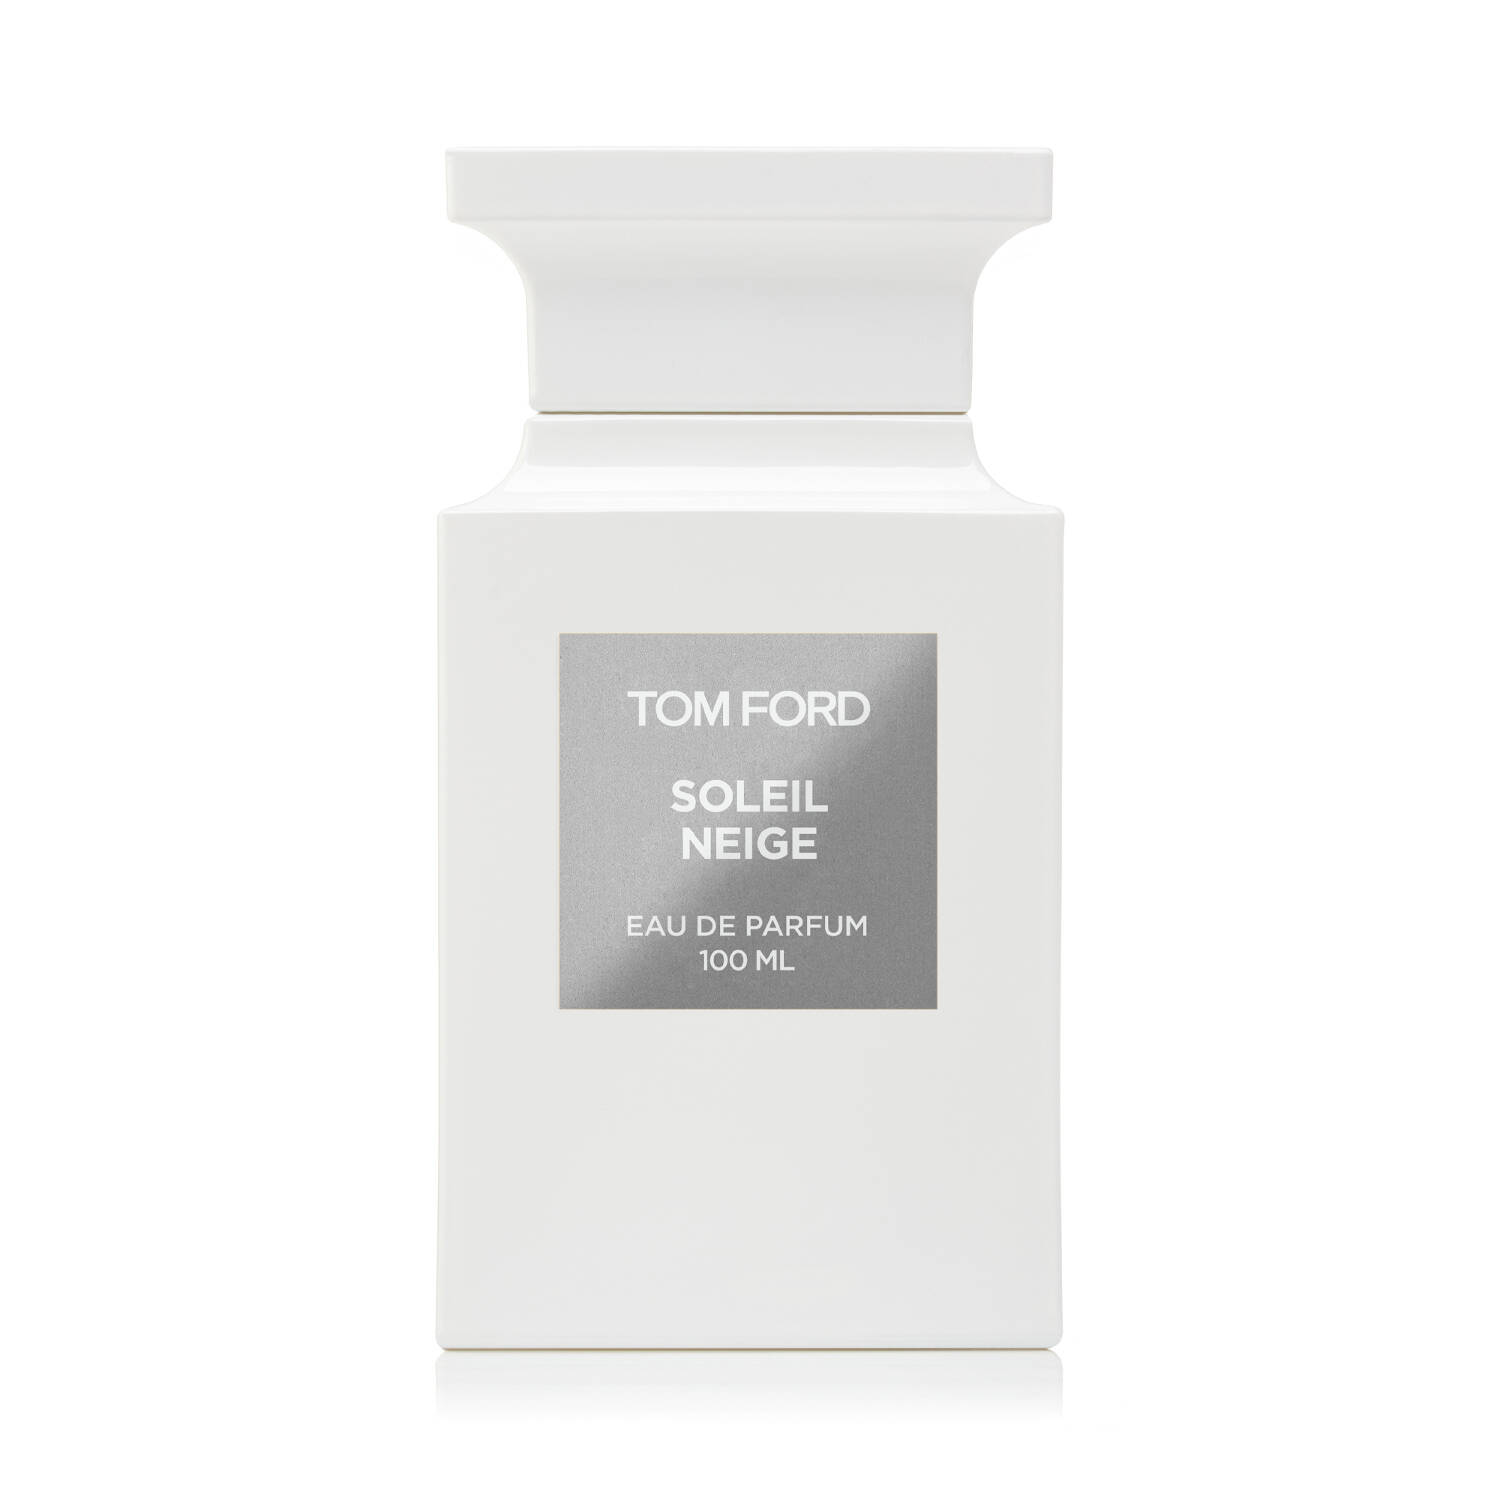 TOM FORD Soleil neige - Eau de Parfum (100 ml) Düfte, Für Damendüfte, Private Blend Fragrance von TOM FORD